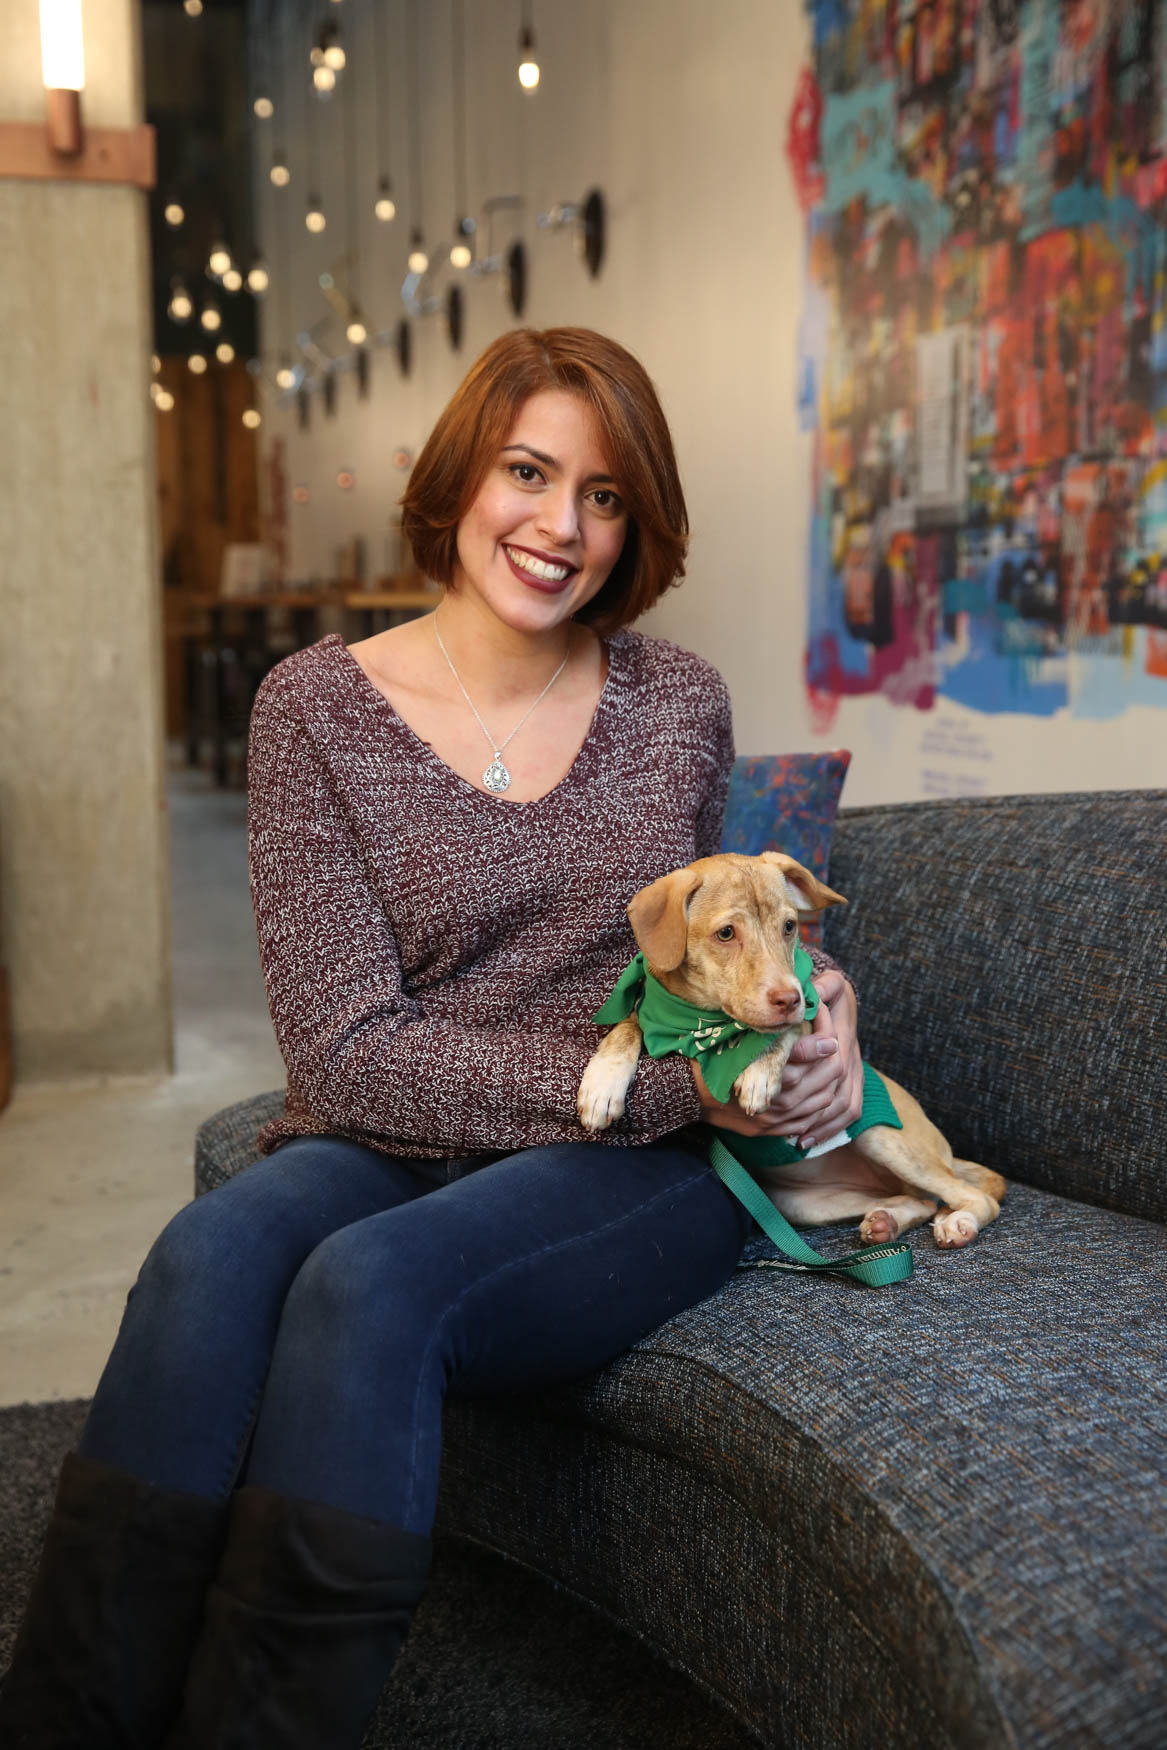 Queen Elizabeth is an 8-pound pup looking for a family to love her, take her on long walks to the dog park and then to cuddle up with on the couch and watch movies! Photo location: Moxy Washington, D.C. Downtown (Image: Amanda Andrade-Rhoades/ DC Refined)